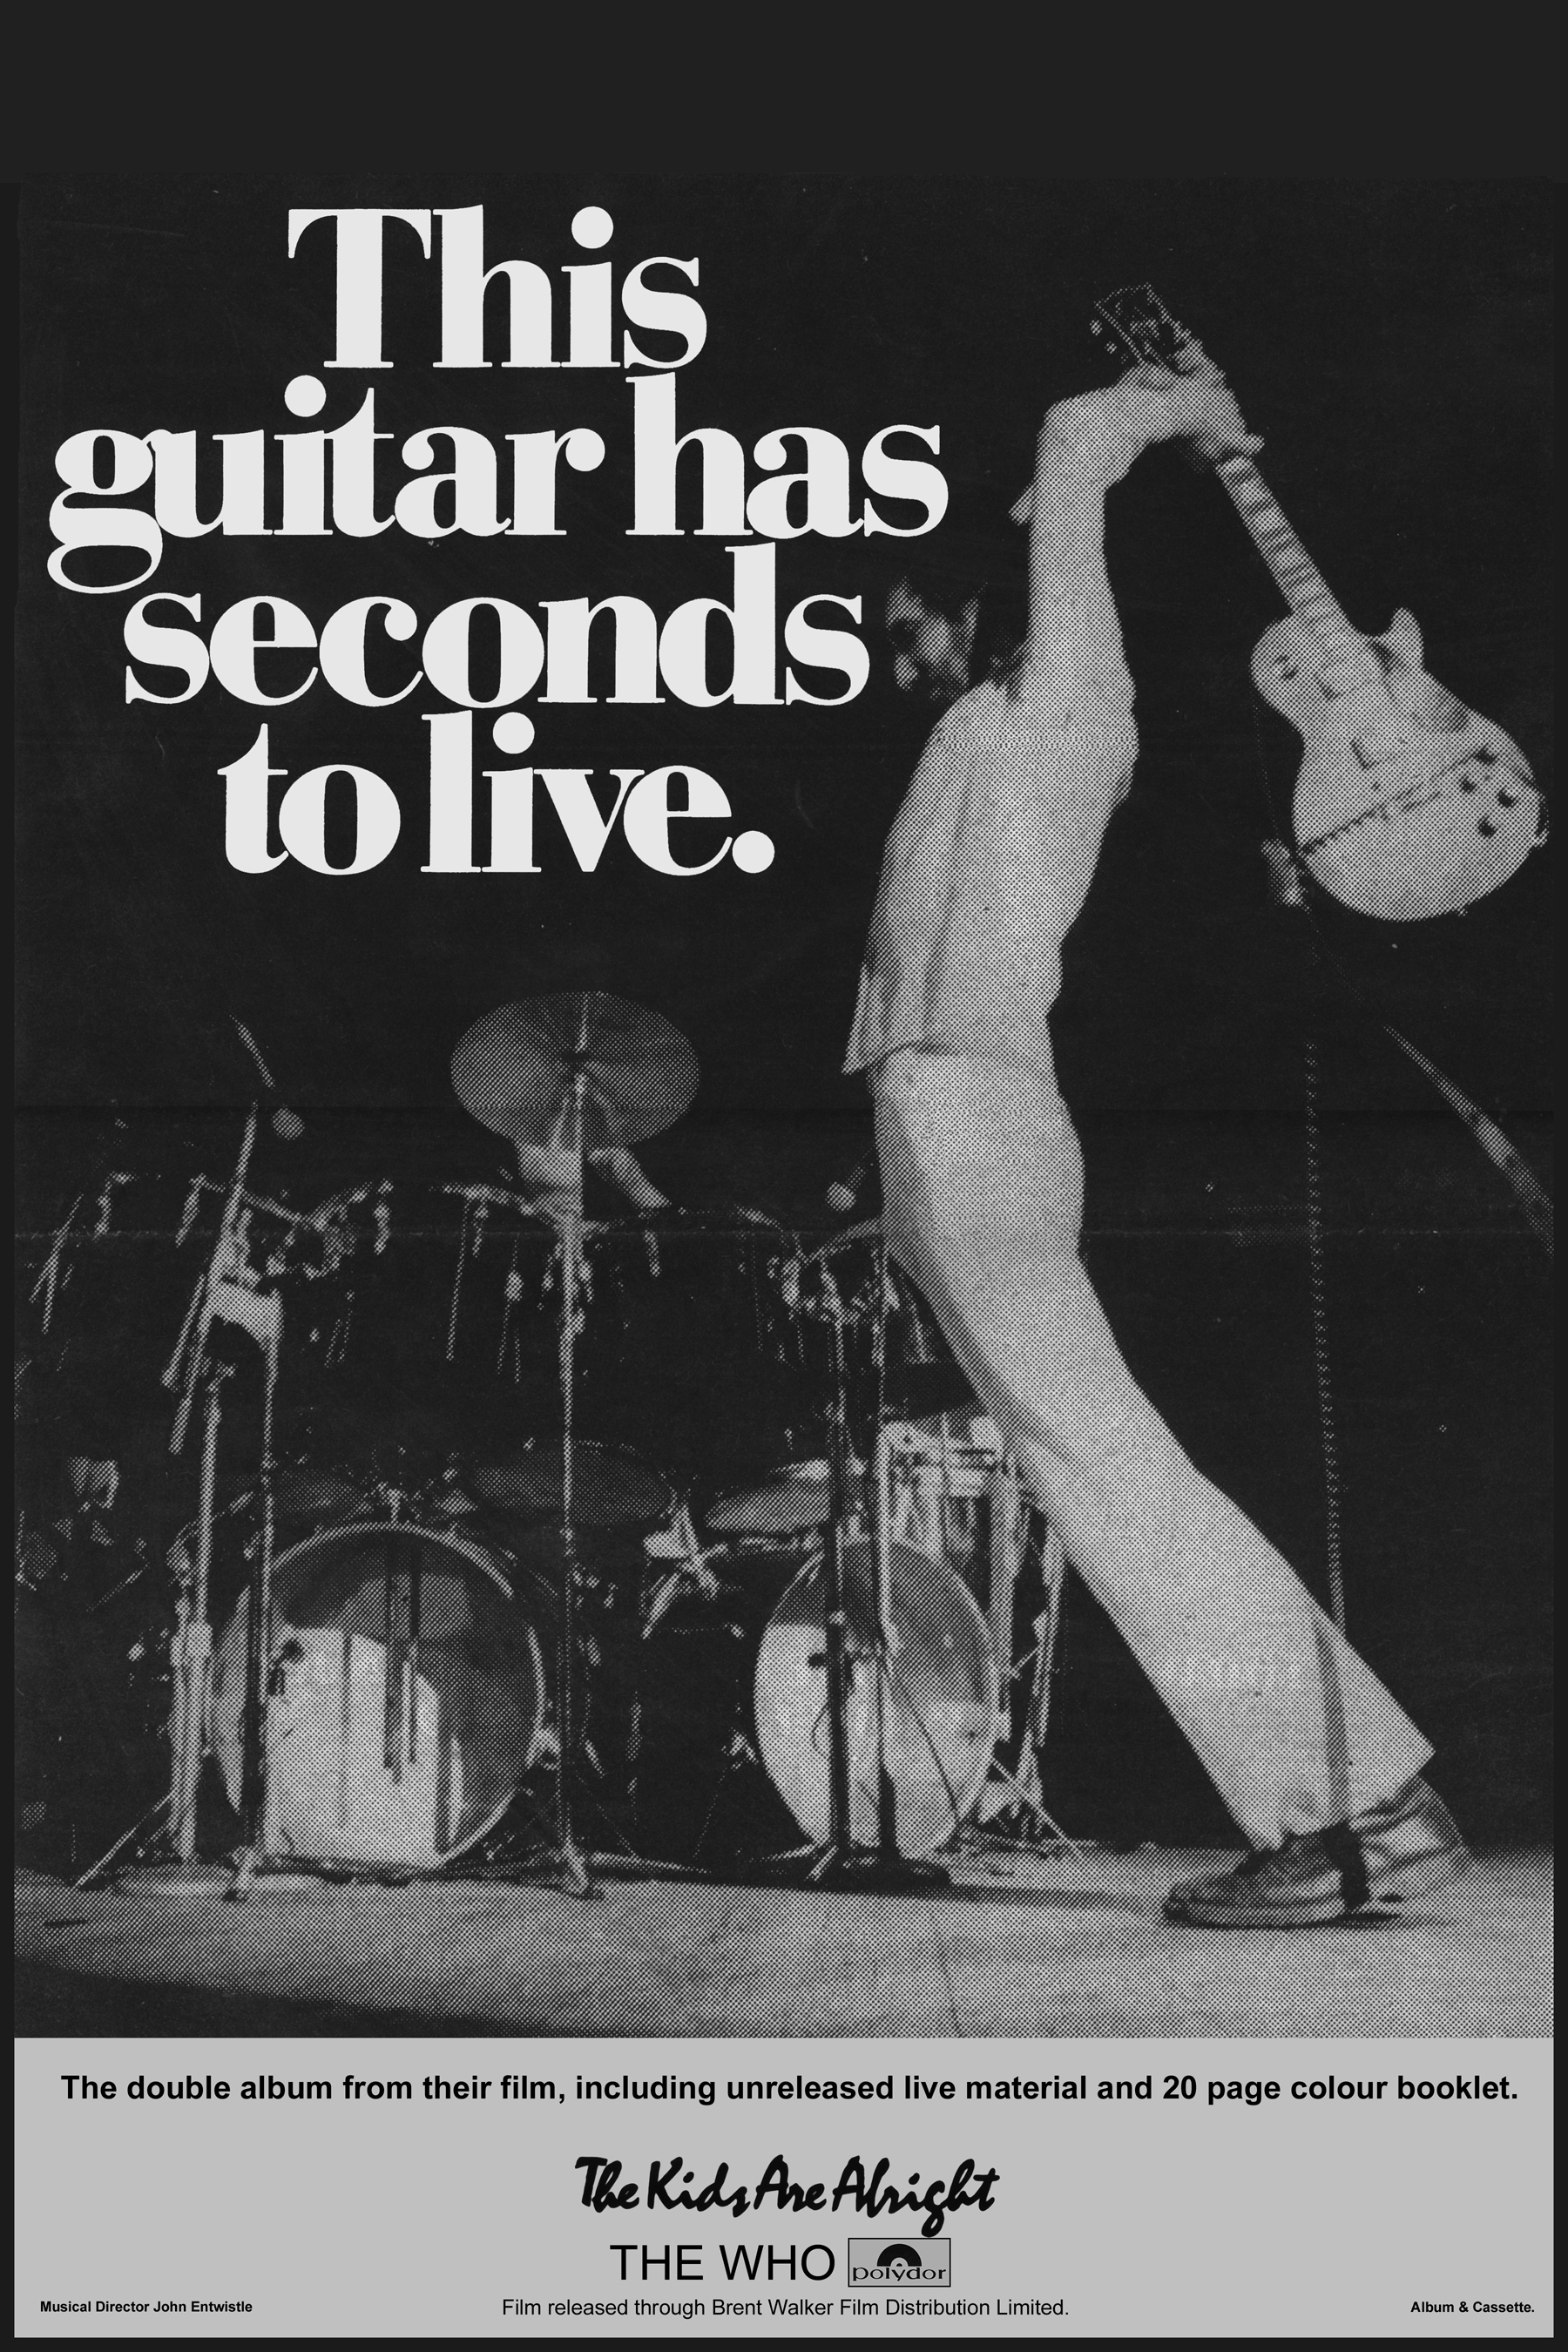 ?u=http%3A%2F%2Fwww.feelnumb.com%2Fwp-content%2Fuploads%2F2012%2F03%2Fthis_guitar_has_seconds_to_live_pete_townshend_the_who_concert.jpg&f=1